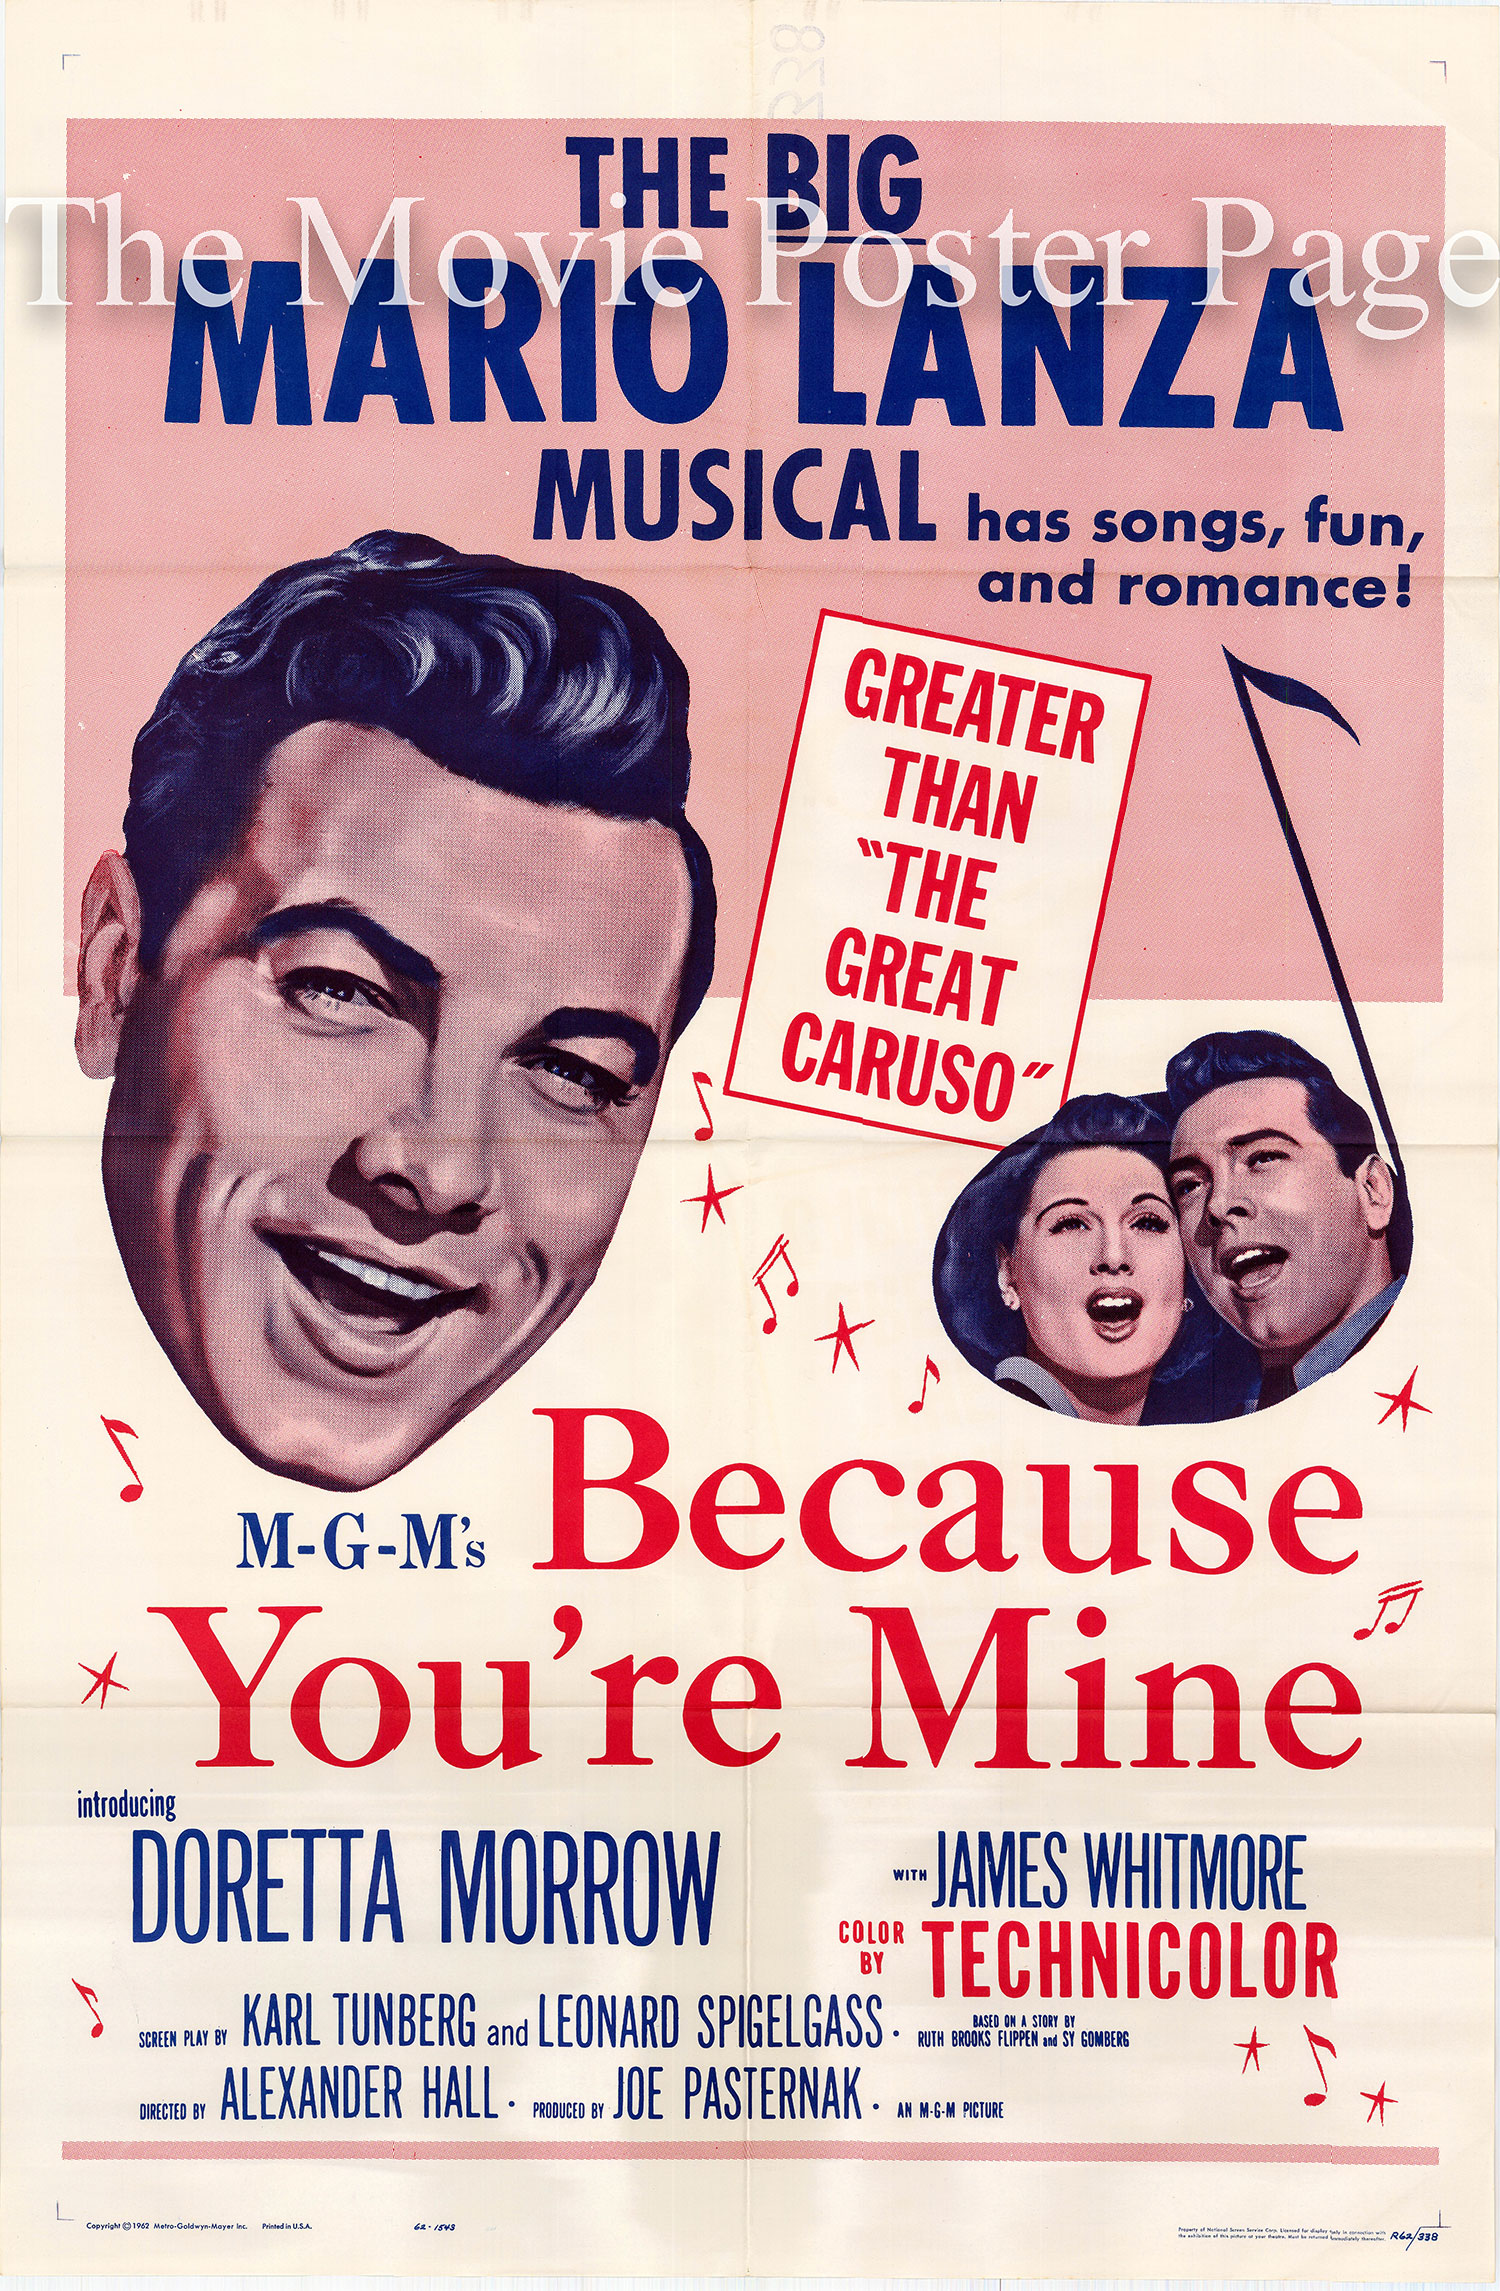 Pictured is a US poster for a rerelease of the 1952 Alexander Hall film Because You're Mine starring Mario Lanza.